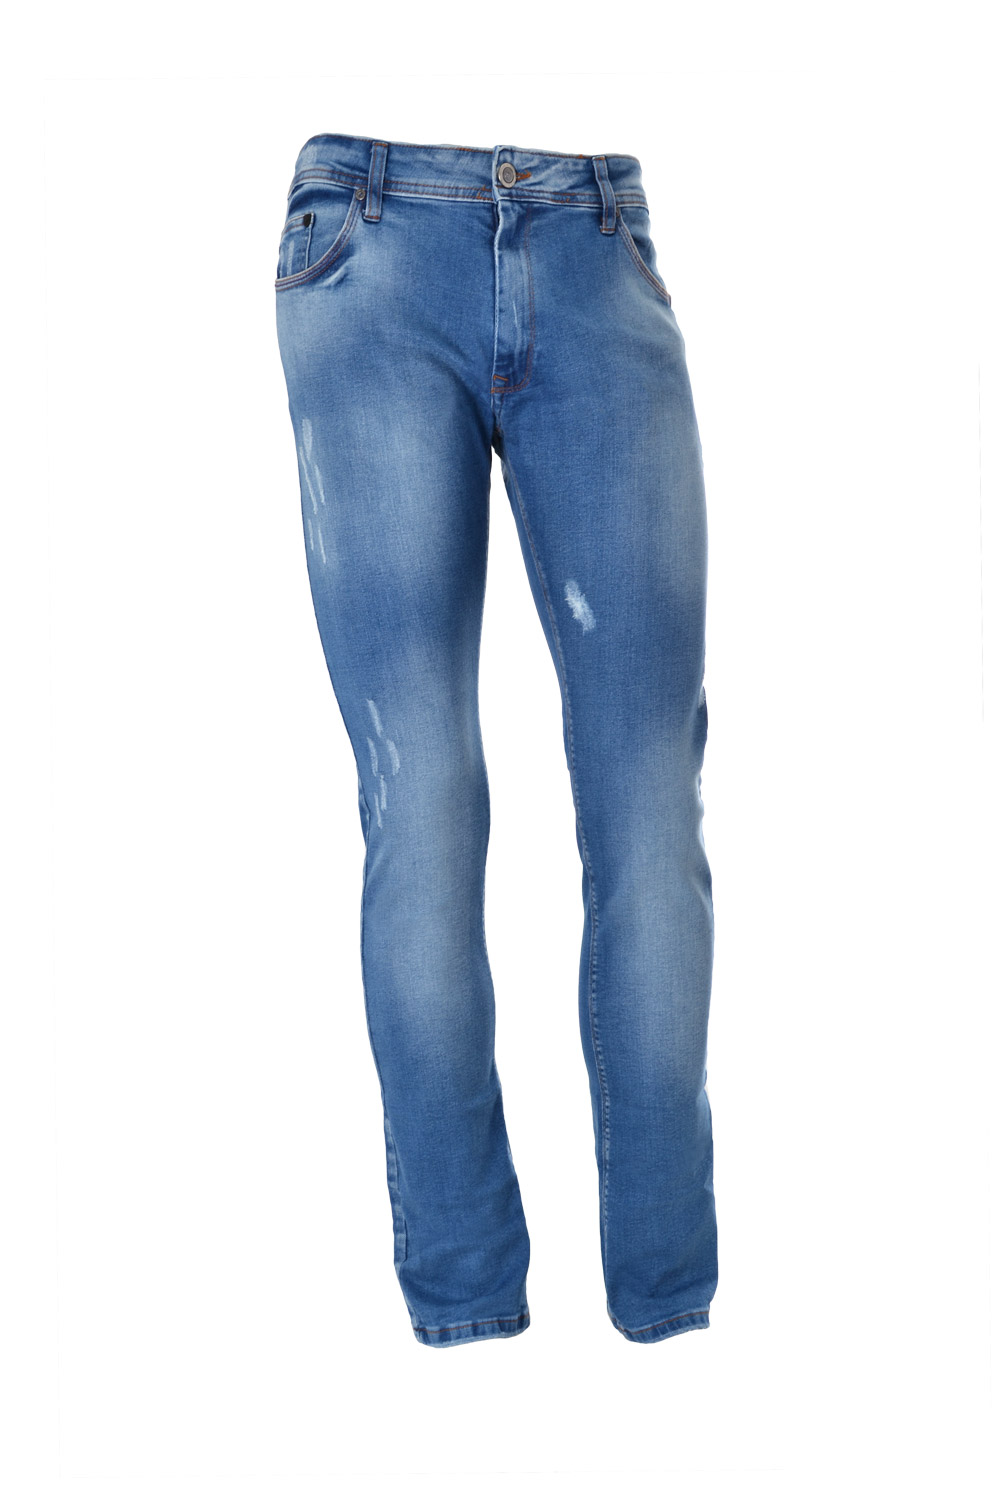 CALÇA JEANS BLUES SLIM ALGODAO & ELASTANO STRETCH STONED DELAVE